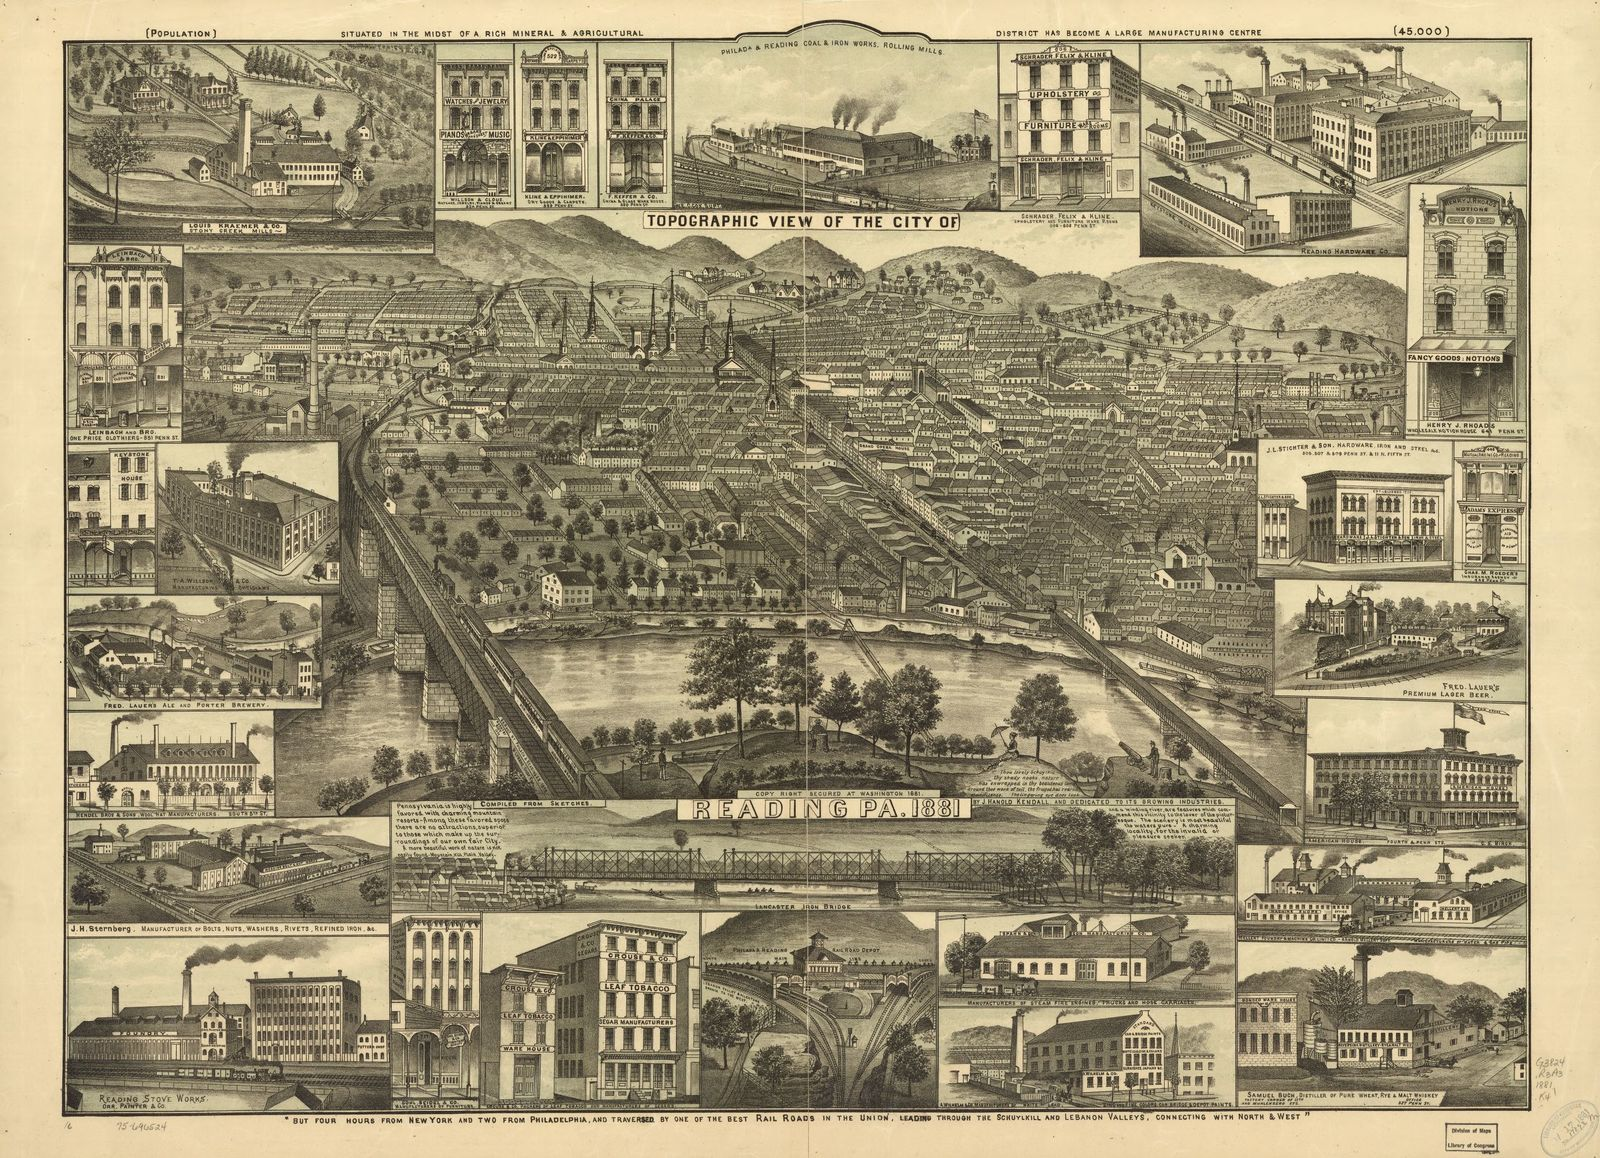 Topographic view of the city of Reading, Pa  1881  | PICRYL